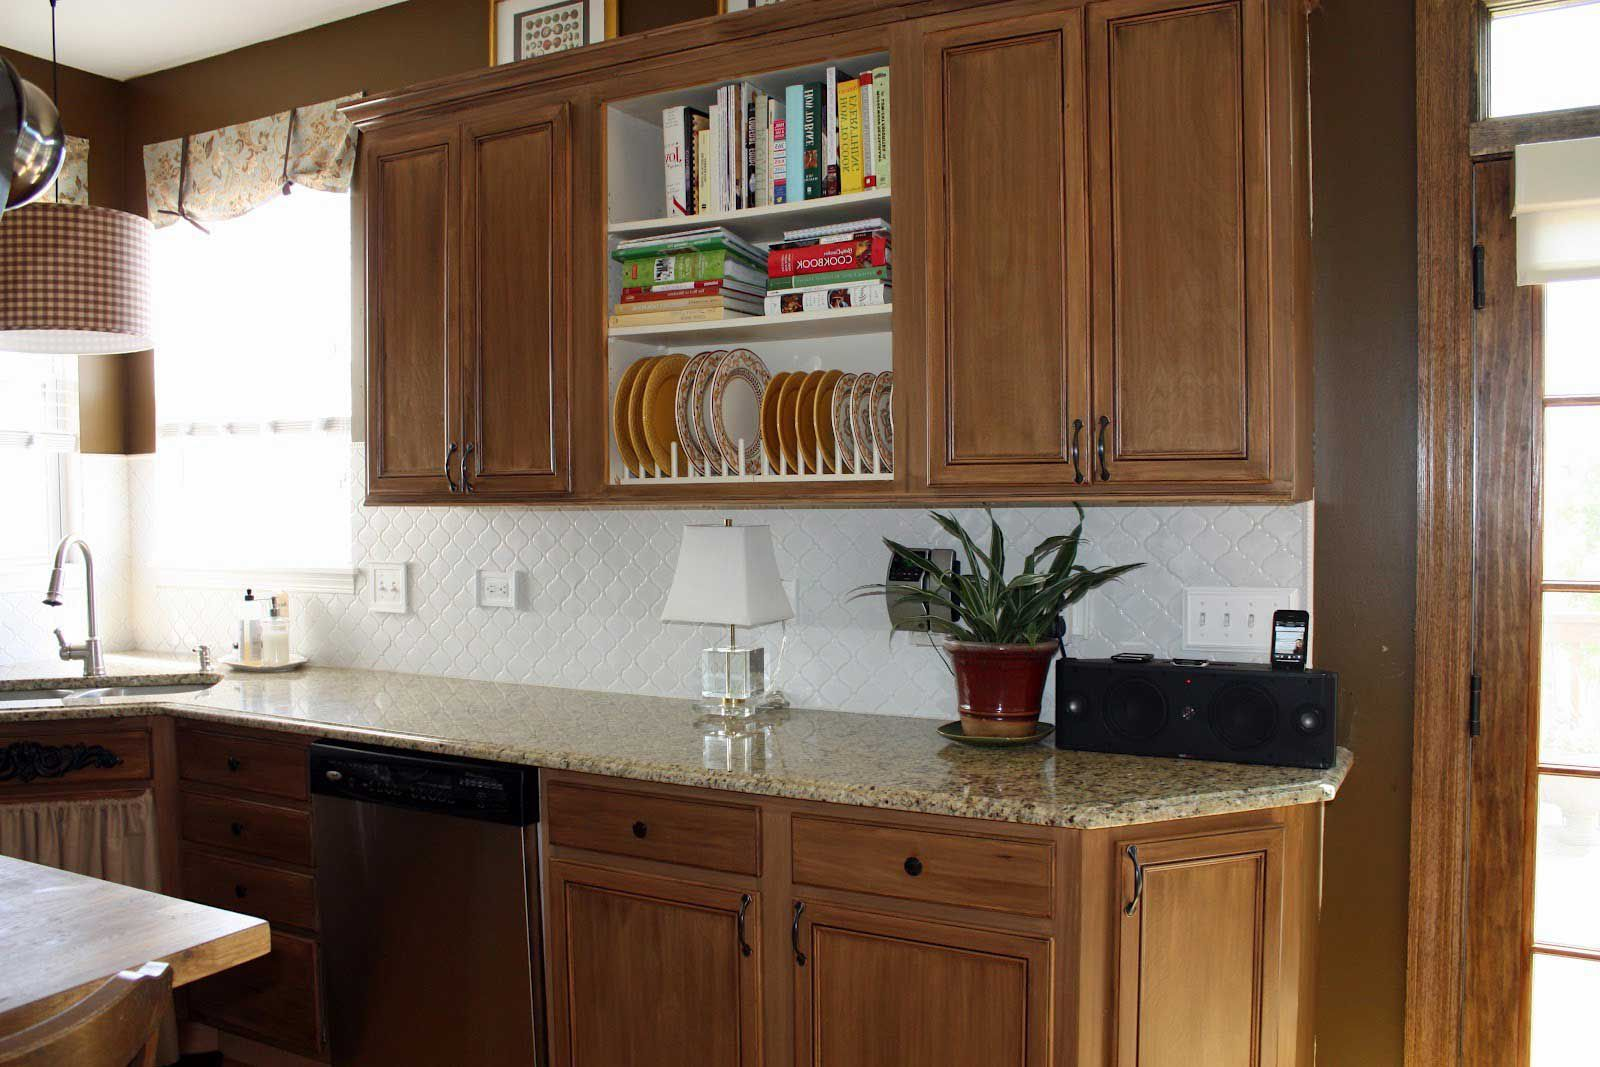 Kitchen Cabinet Doors Replacement Home Depot - Modern ...